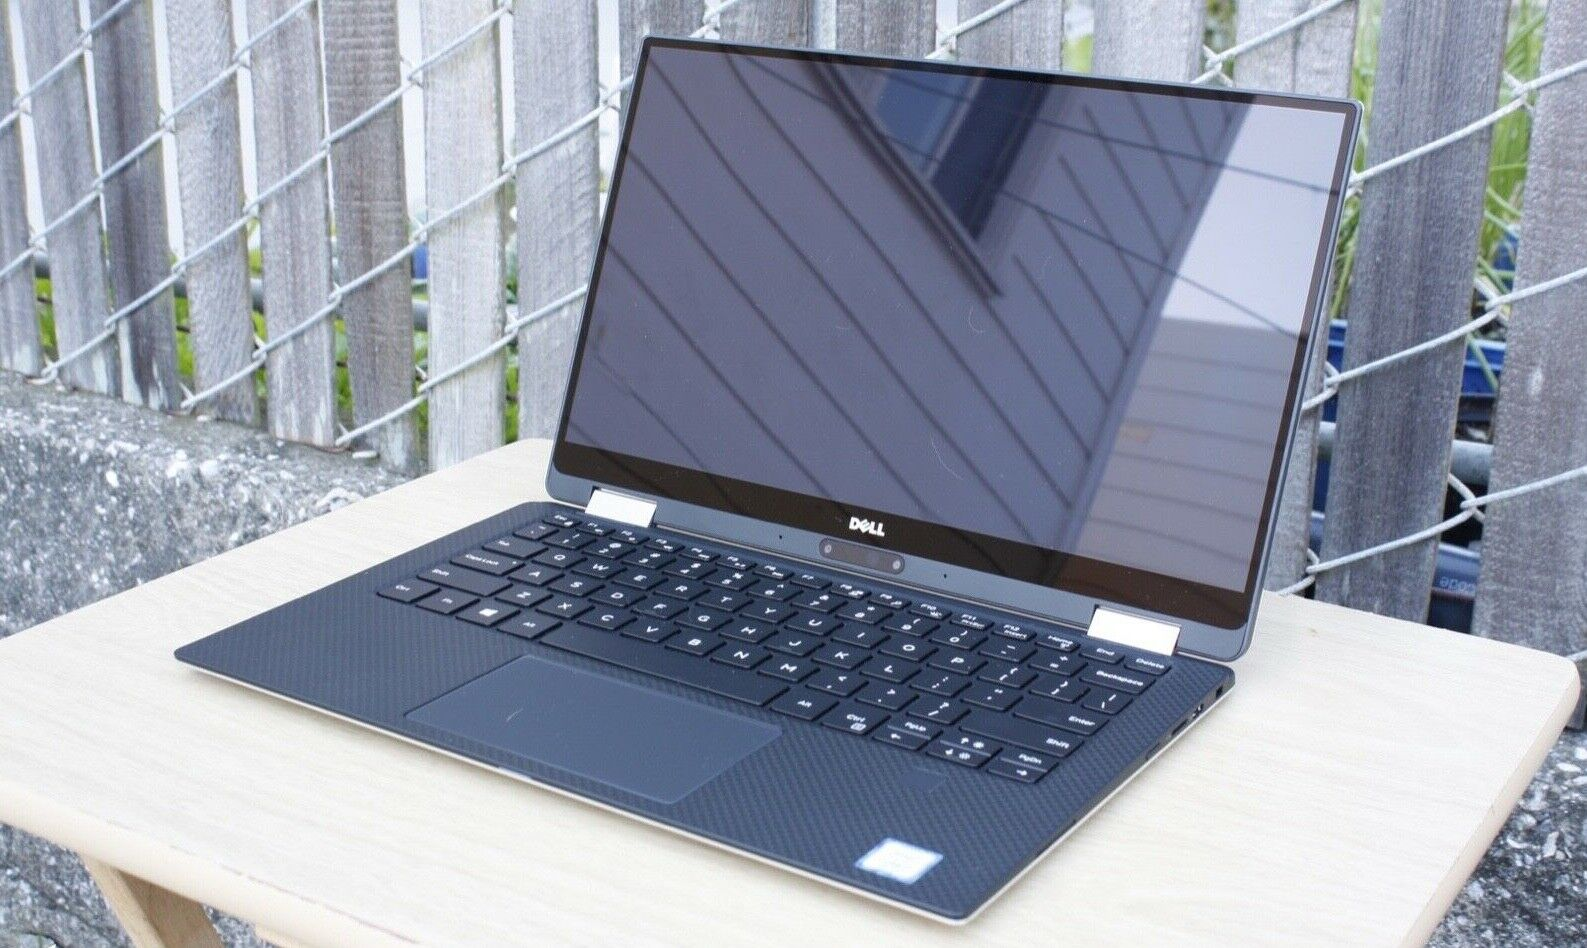 Dell XPS 13 9365 2-in-1 Tablet & Laptop - Core i7 4K 3200x1800 Touch 512GB 8GB 8